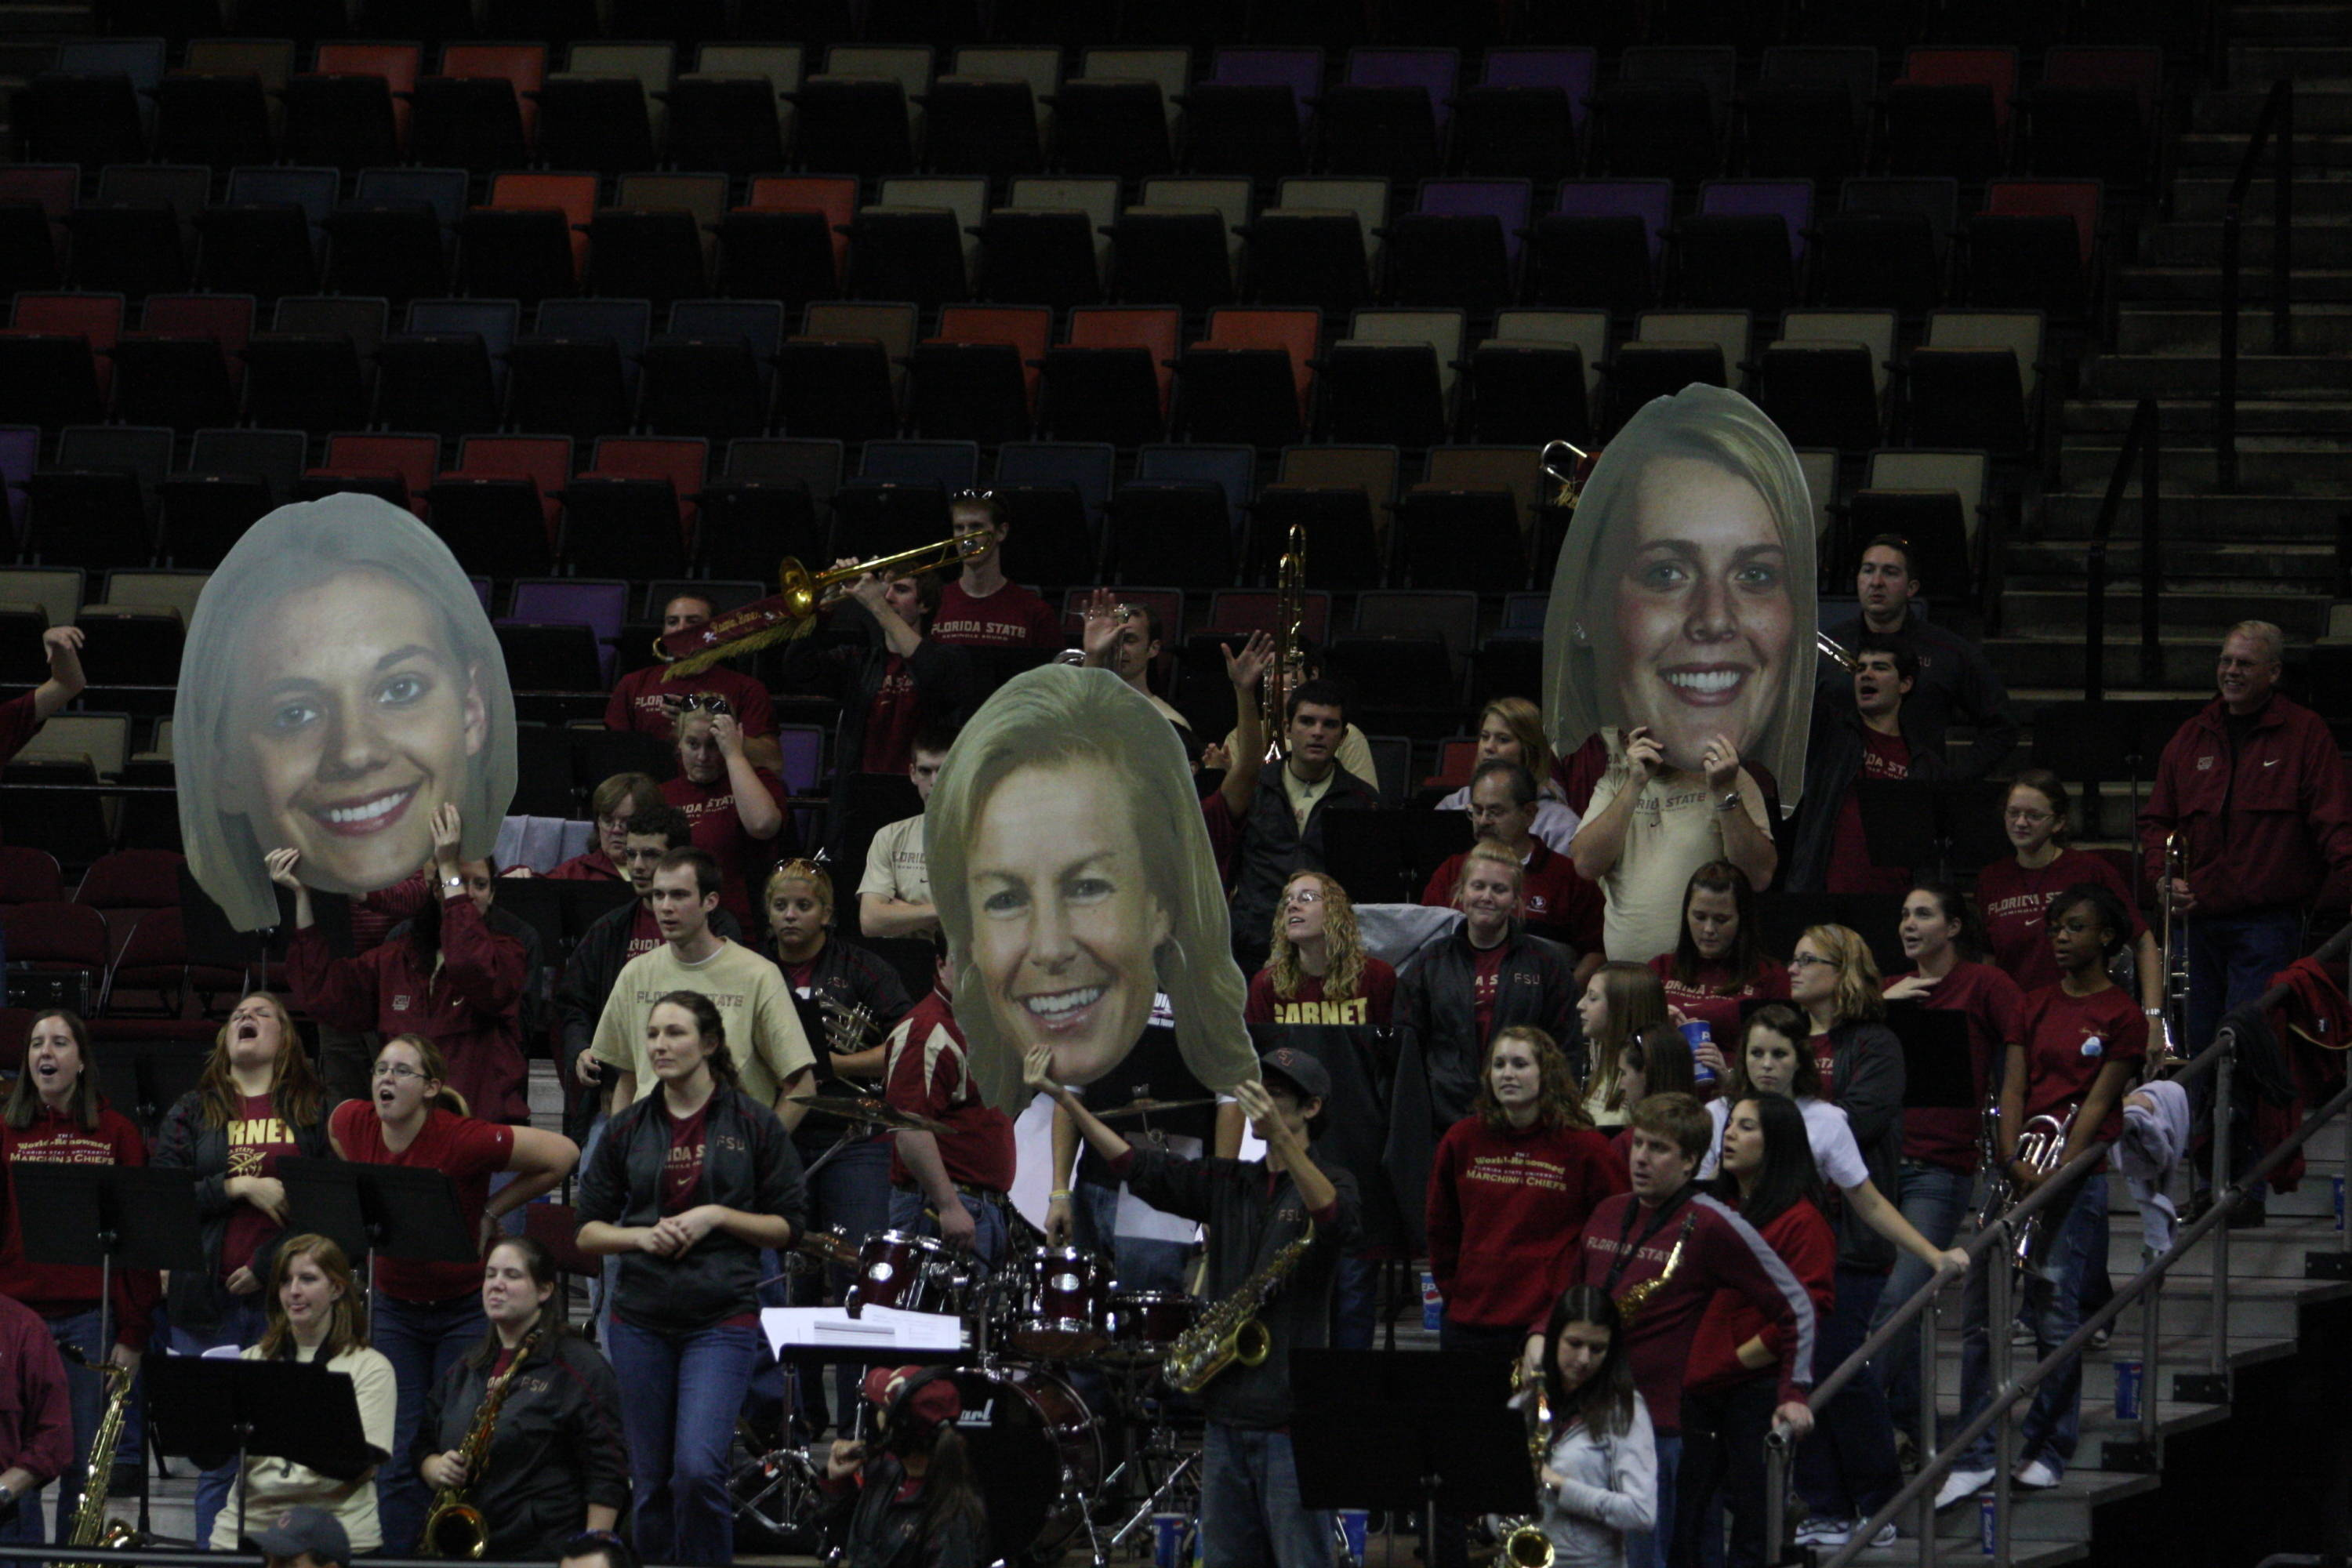 August 16 ... Women's basketball games are a lot of fun at the Donald L. Tucker Center. Here, Seminole Sound is seen showing their support for Alexa Deluzio, head coach Sue Semrau and Cierra Bravard with some really cool cutouts.